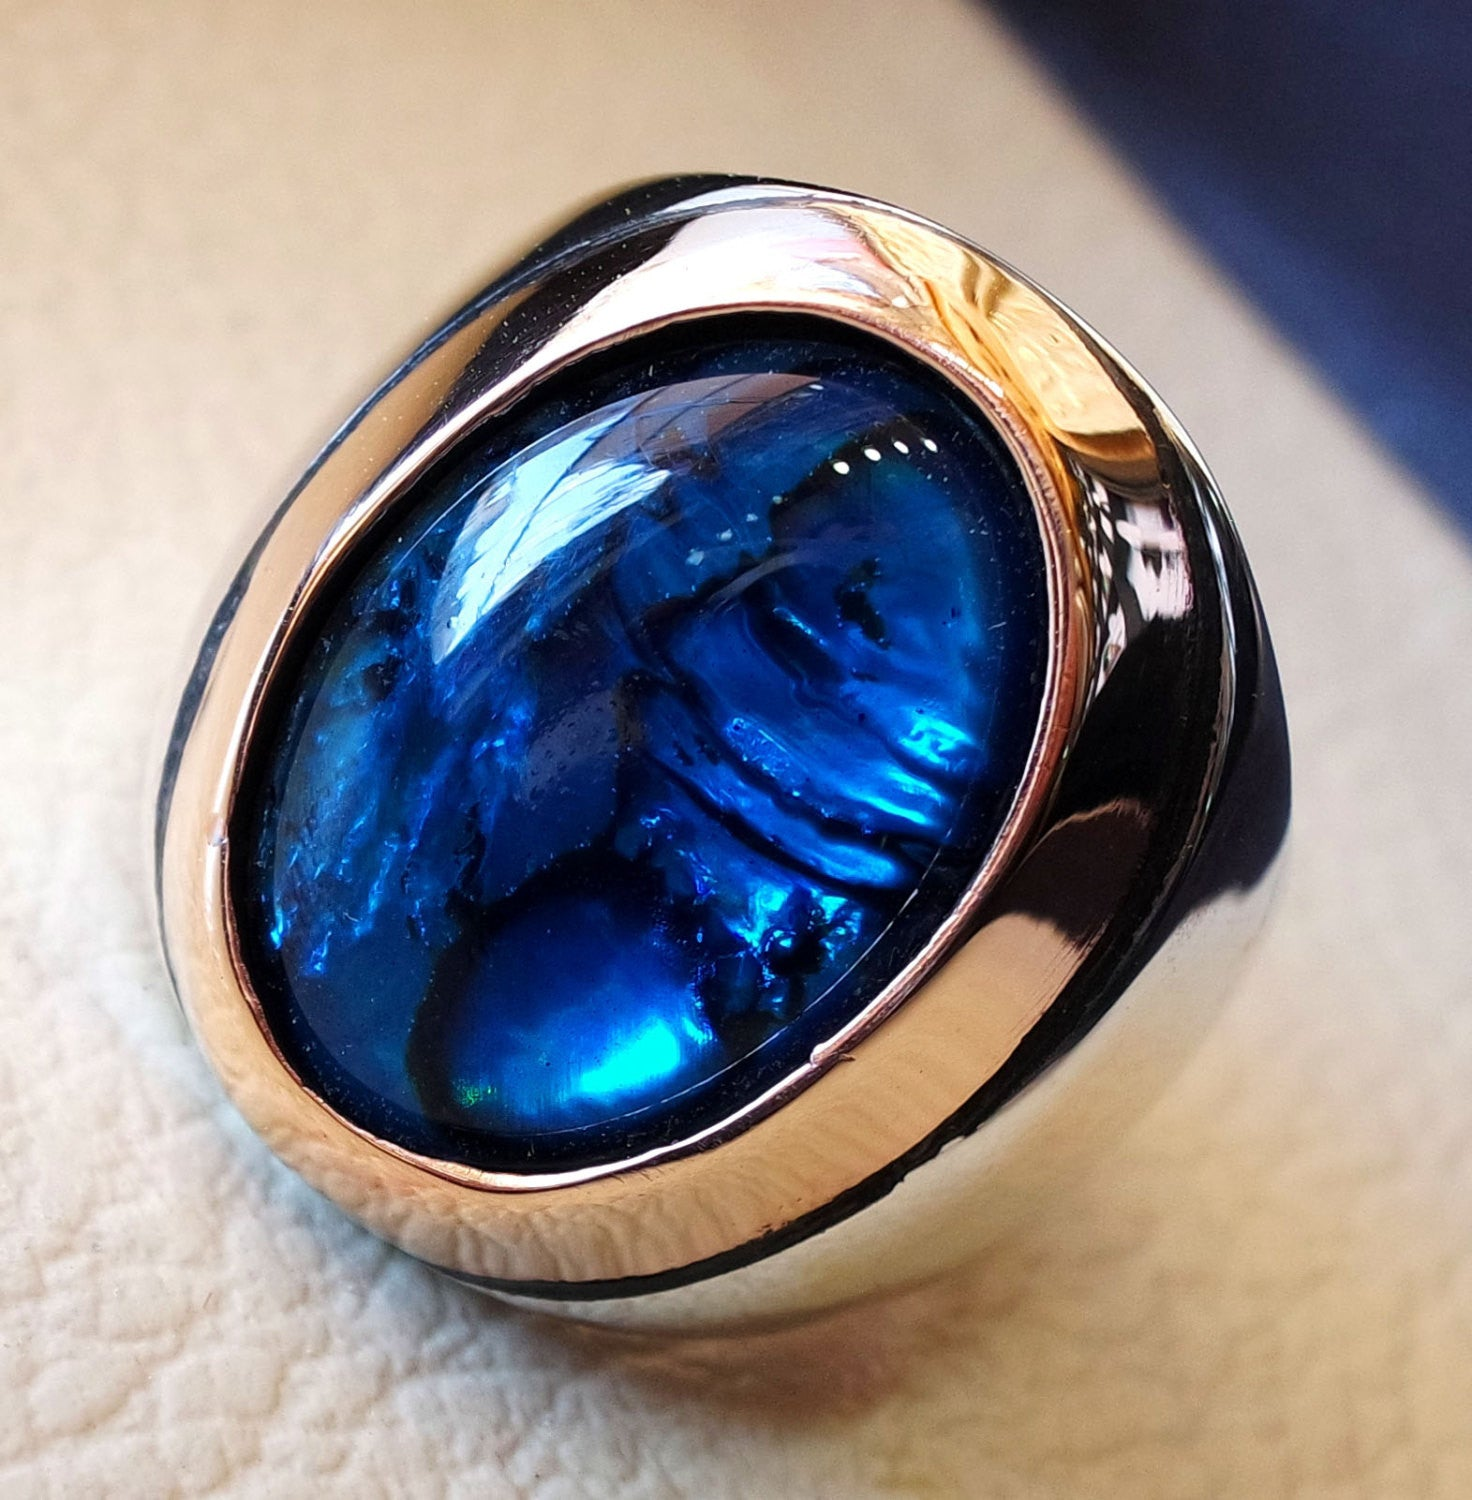 heavy men ring paua abalone shell blue oval stone ottoman arabic style two tone sterling silver 925 all sizes fast shipping